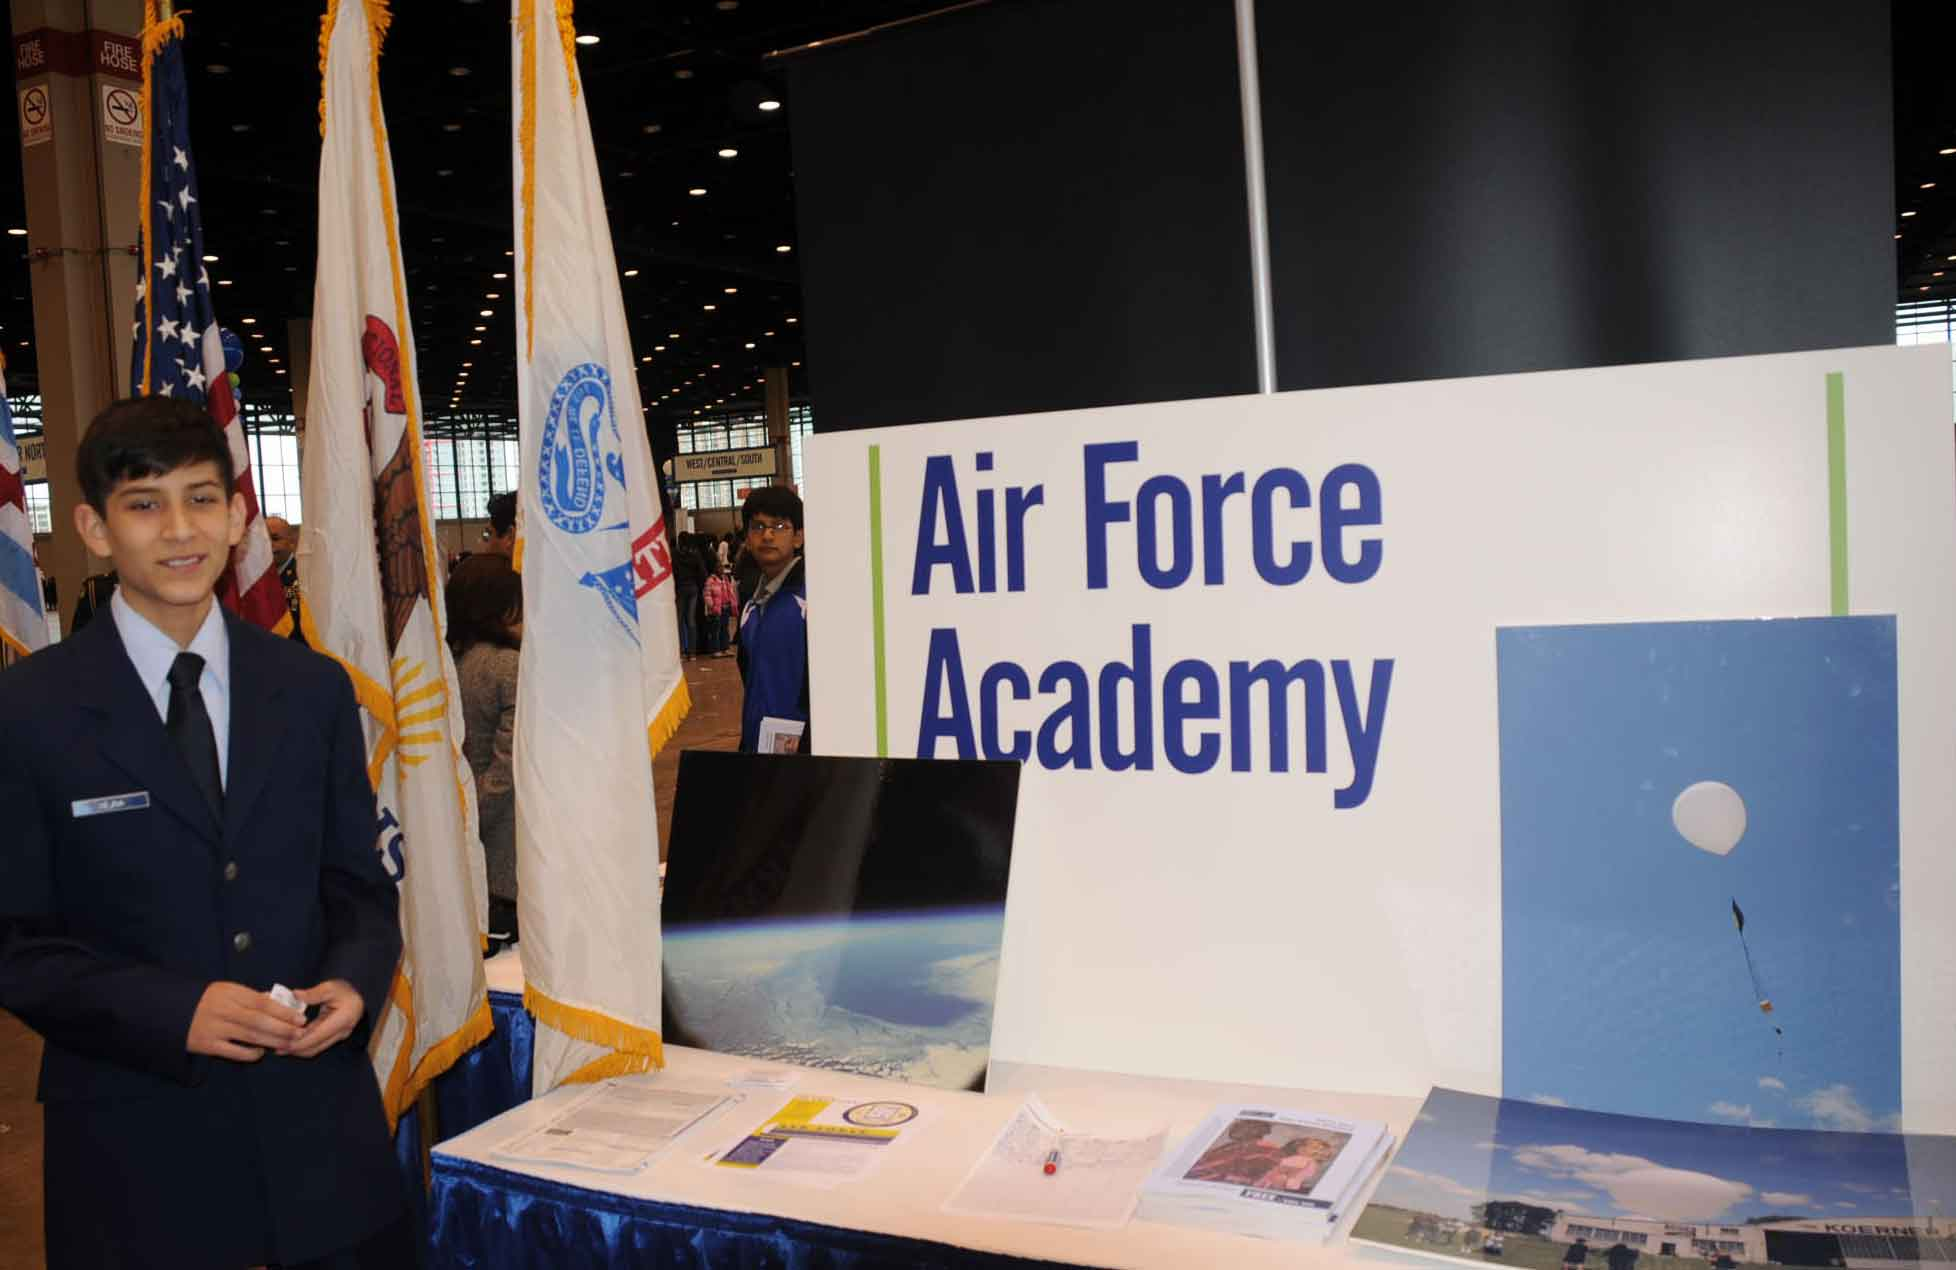 Even Chicago's 'Air Force Academy' high school, which had only been in  operation for six weeks as of October 10, 2009, had its own booth.